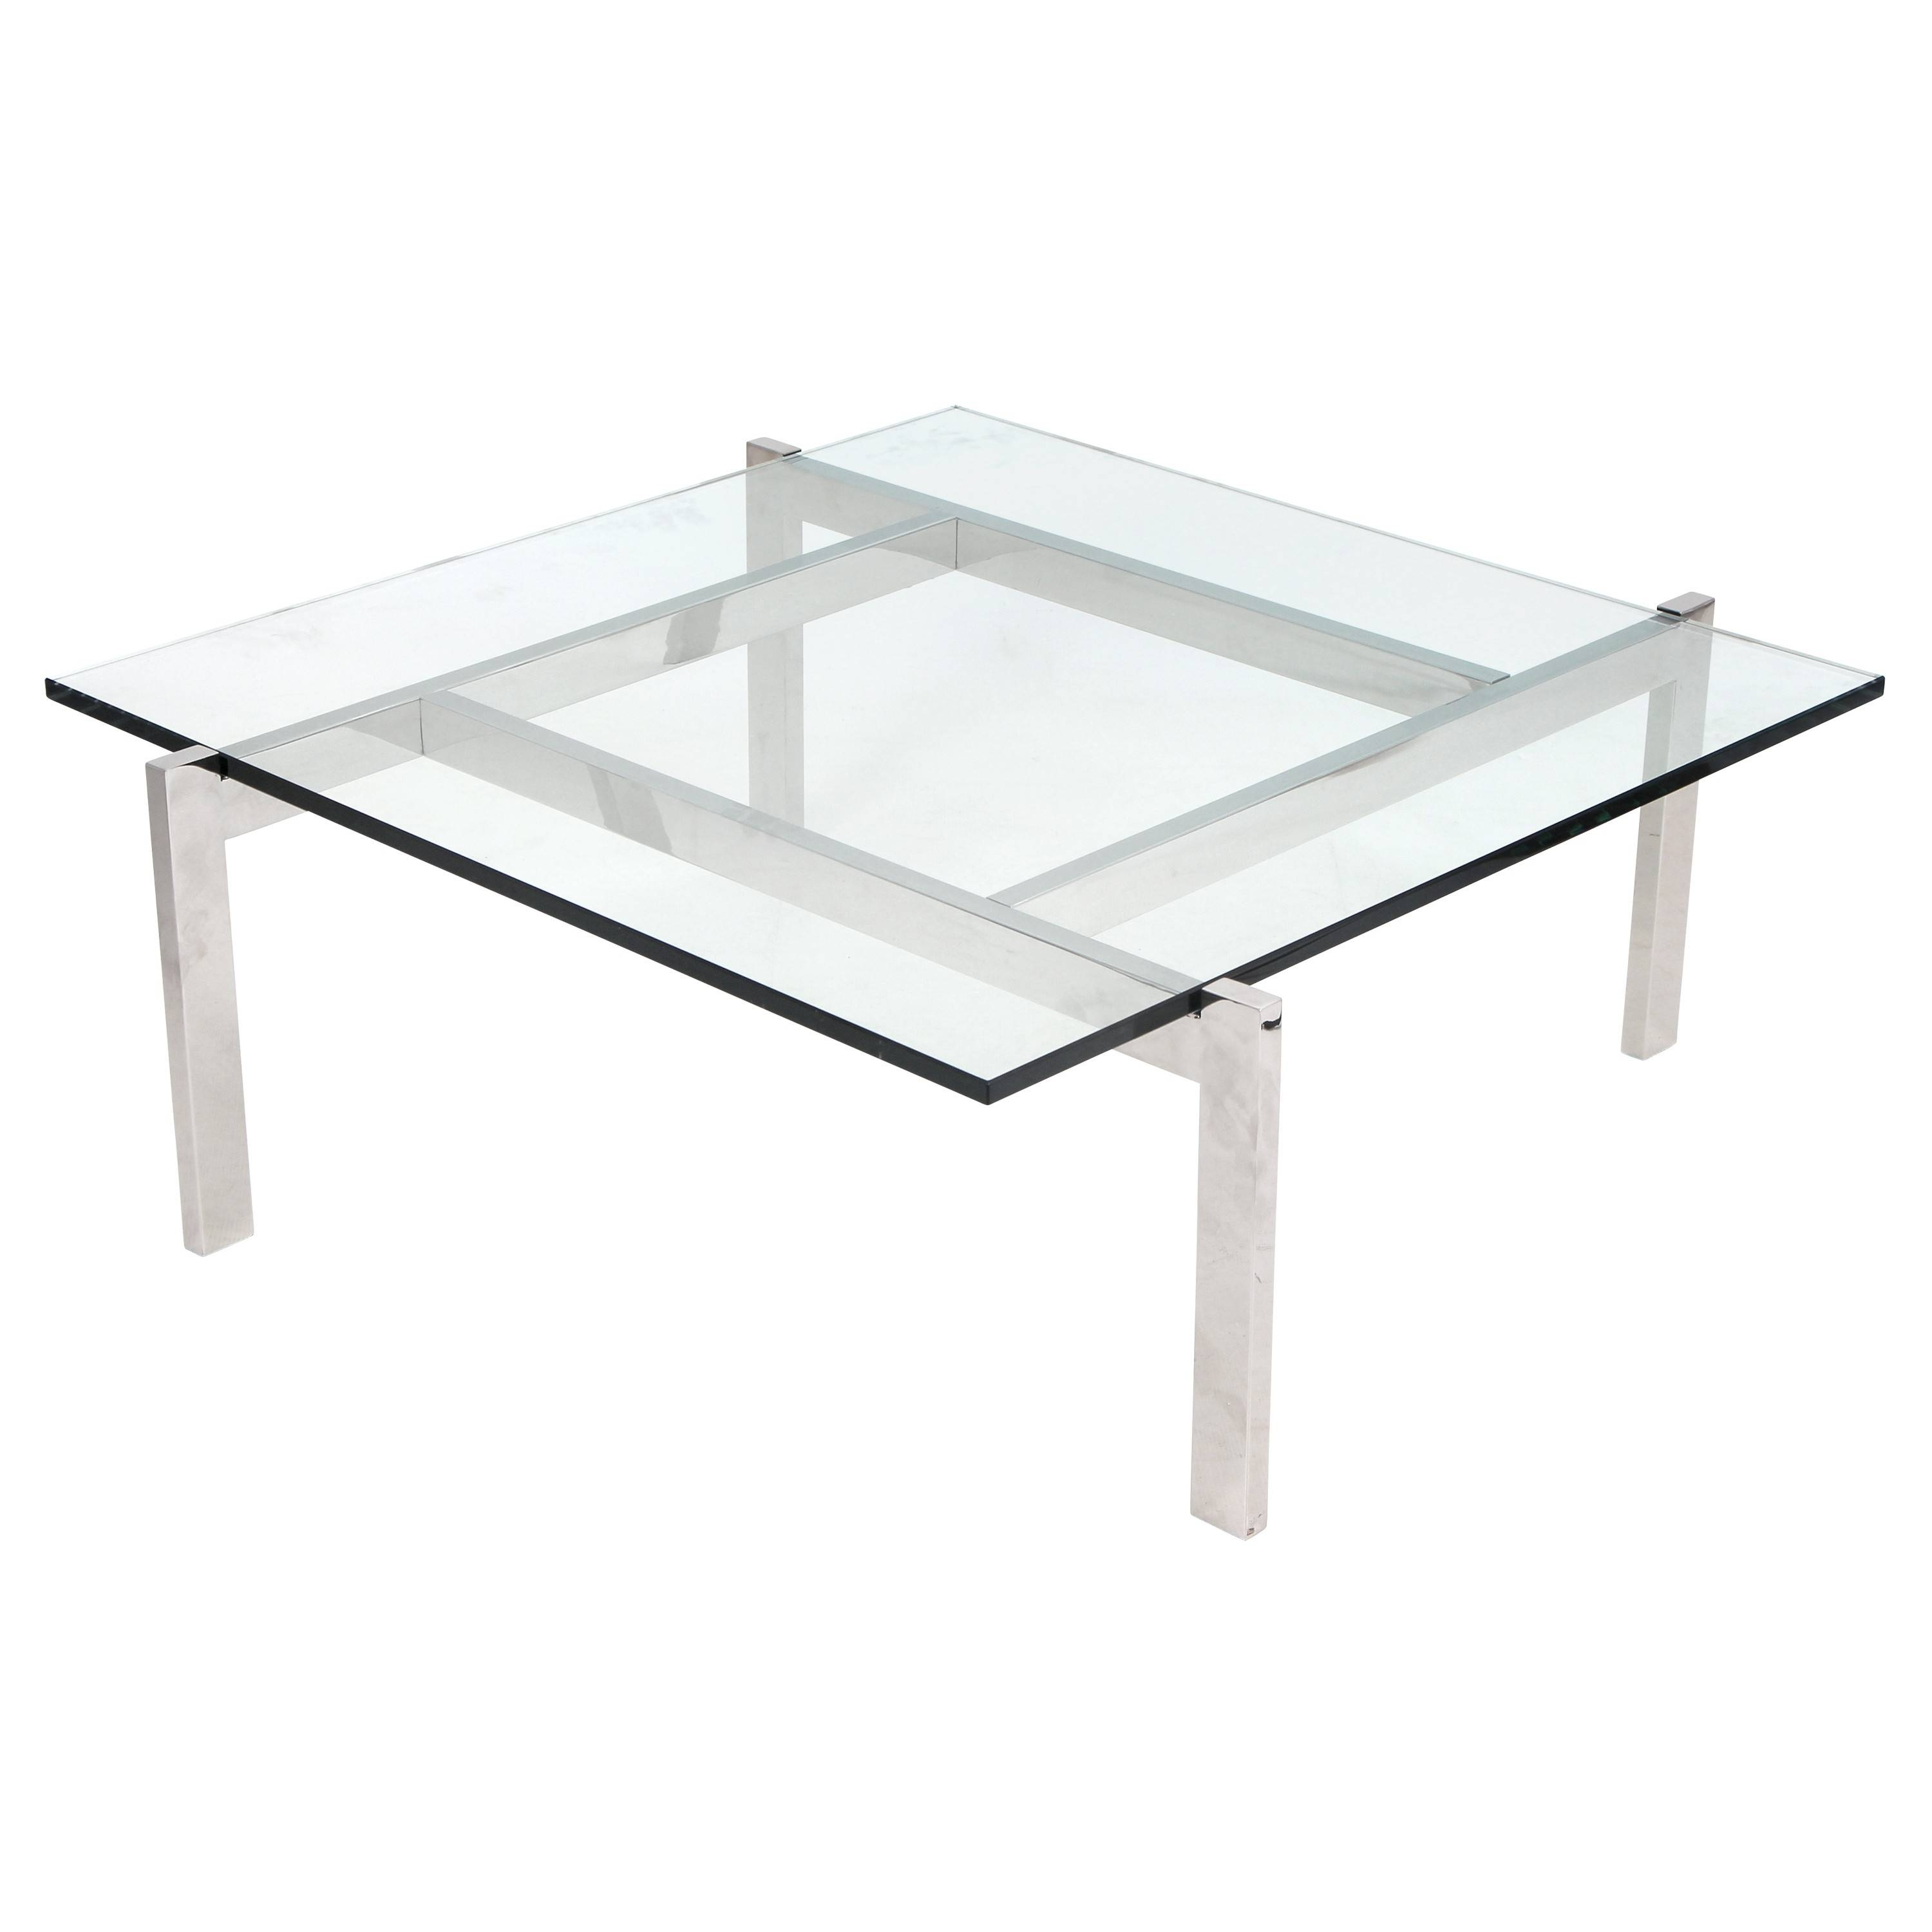 Coffee Table: Elegant Glass Square Coffee Table Ideas Glass Coffee intended for Square Coffee Table Modern (Image 3 of 15)